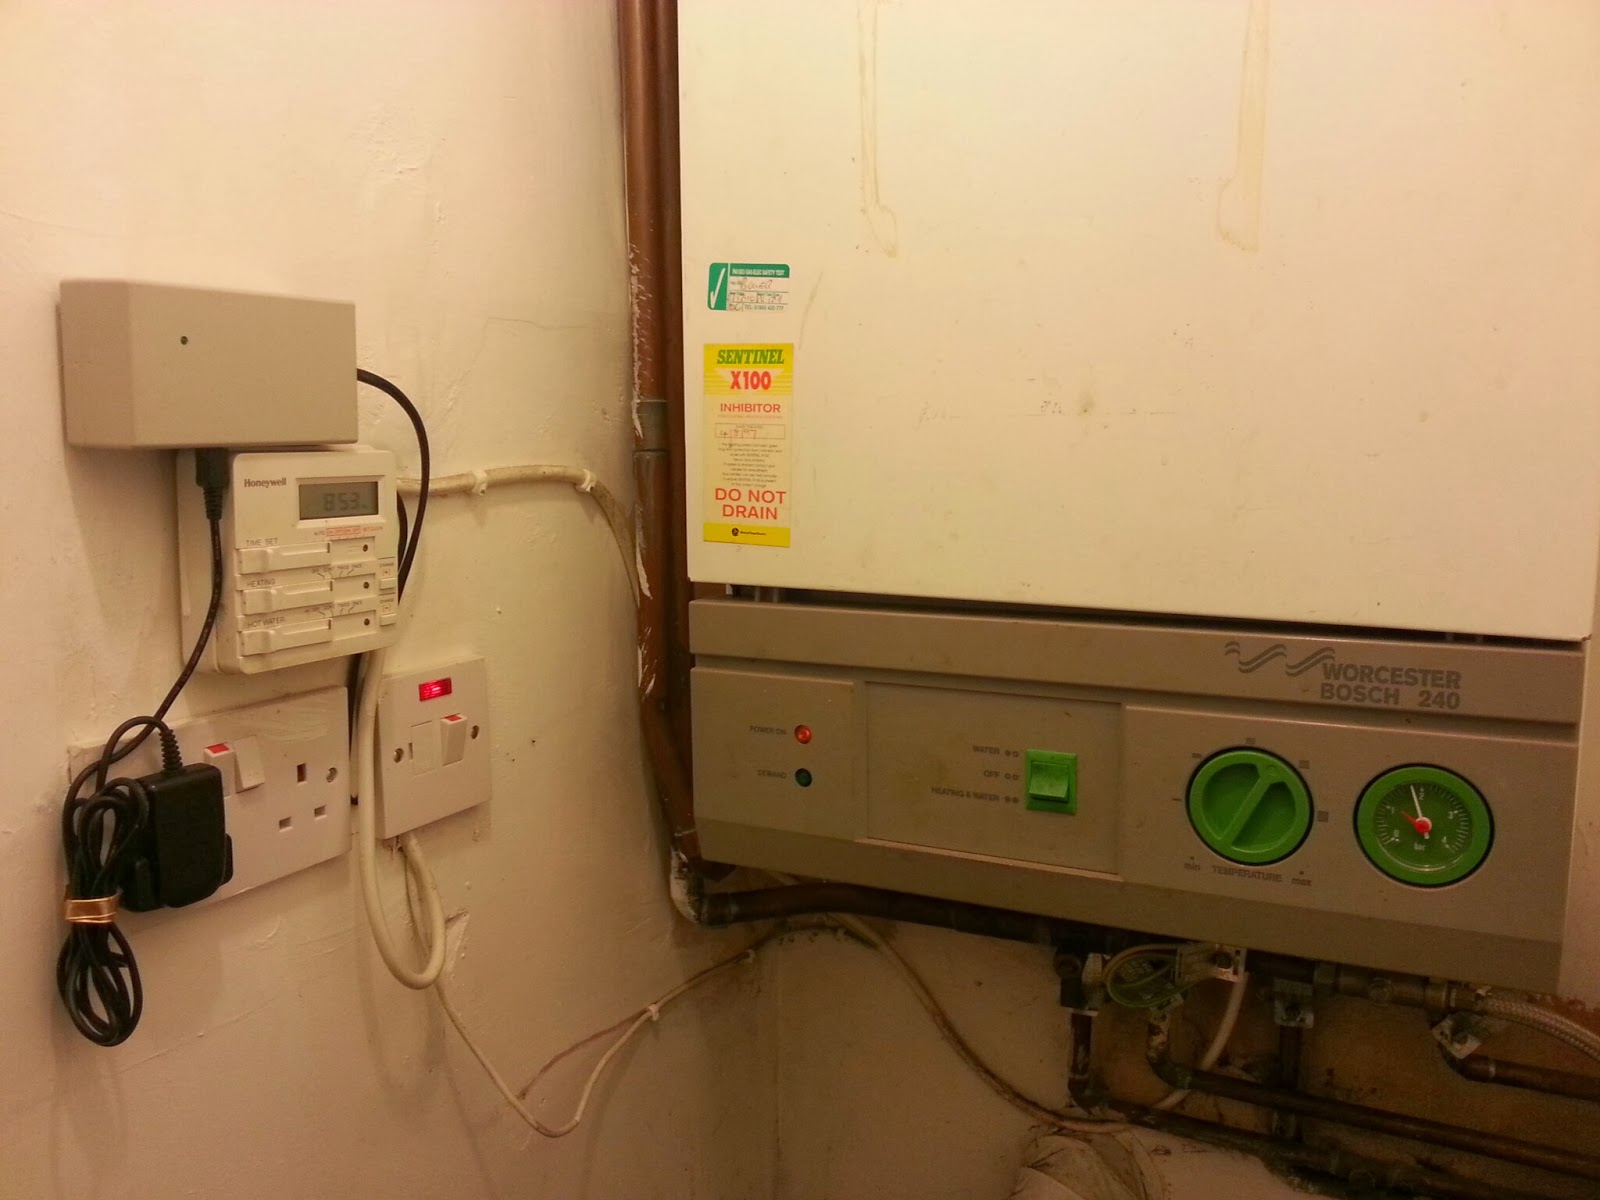 hight resolution of gas combi boiler relay control unit top left